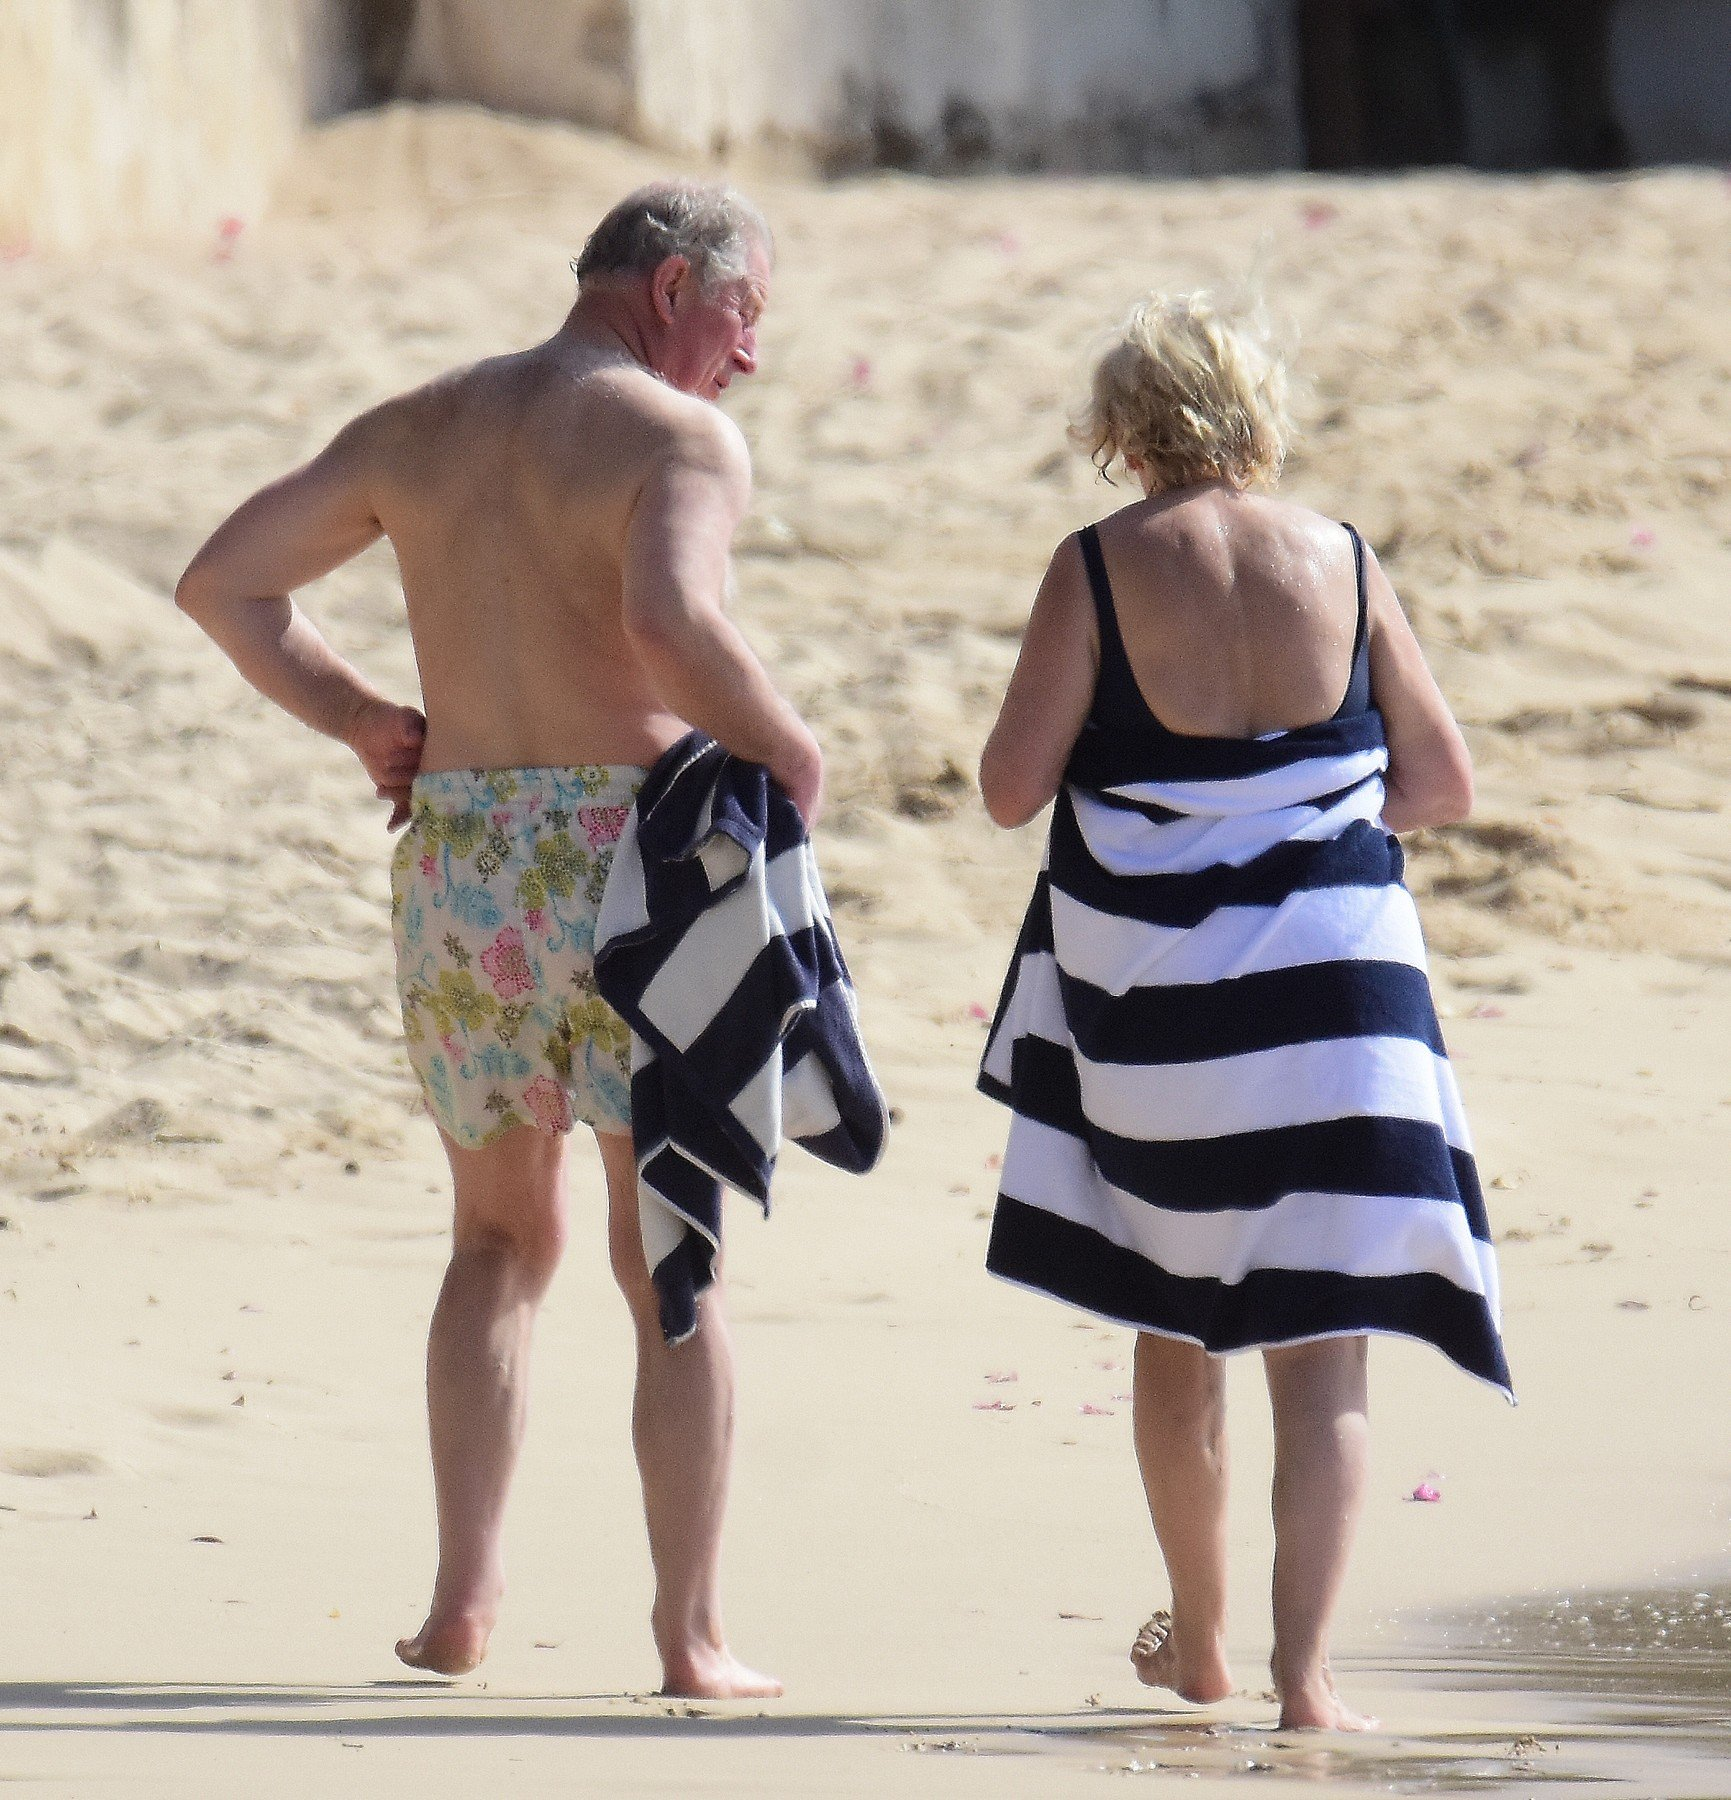 *PREMIUM EXCLUSIVE* Prince Charles and wife Camilla, Duchess of Cornwall,  pictured on the beach in Barbados. The Prince of Wales, 70, showed off his trim frame in floral trunks while Camilla, 71, wore an aqua-blue one-piece swimsuit. Camilla and Charles are touring the Caribbean representing the Queen at the behest of the Foreign Office. The highlight of their trip is a four-day tour of Cuba beginning on March 24 - the first by members of the monarchy. 18 Mar 2019, Image: 420540145, License: Rights-managed, Restrictions: World Rights, Model Release: no, Credit line: Profimedia, Mega Agency